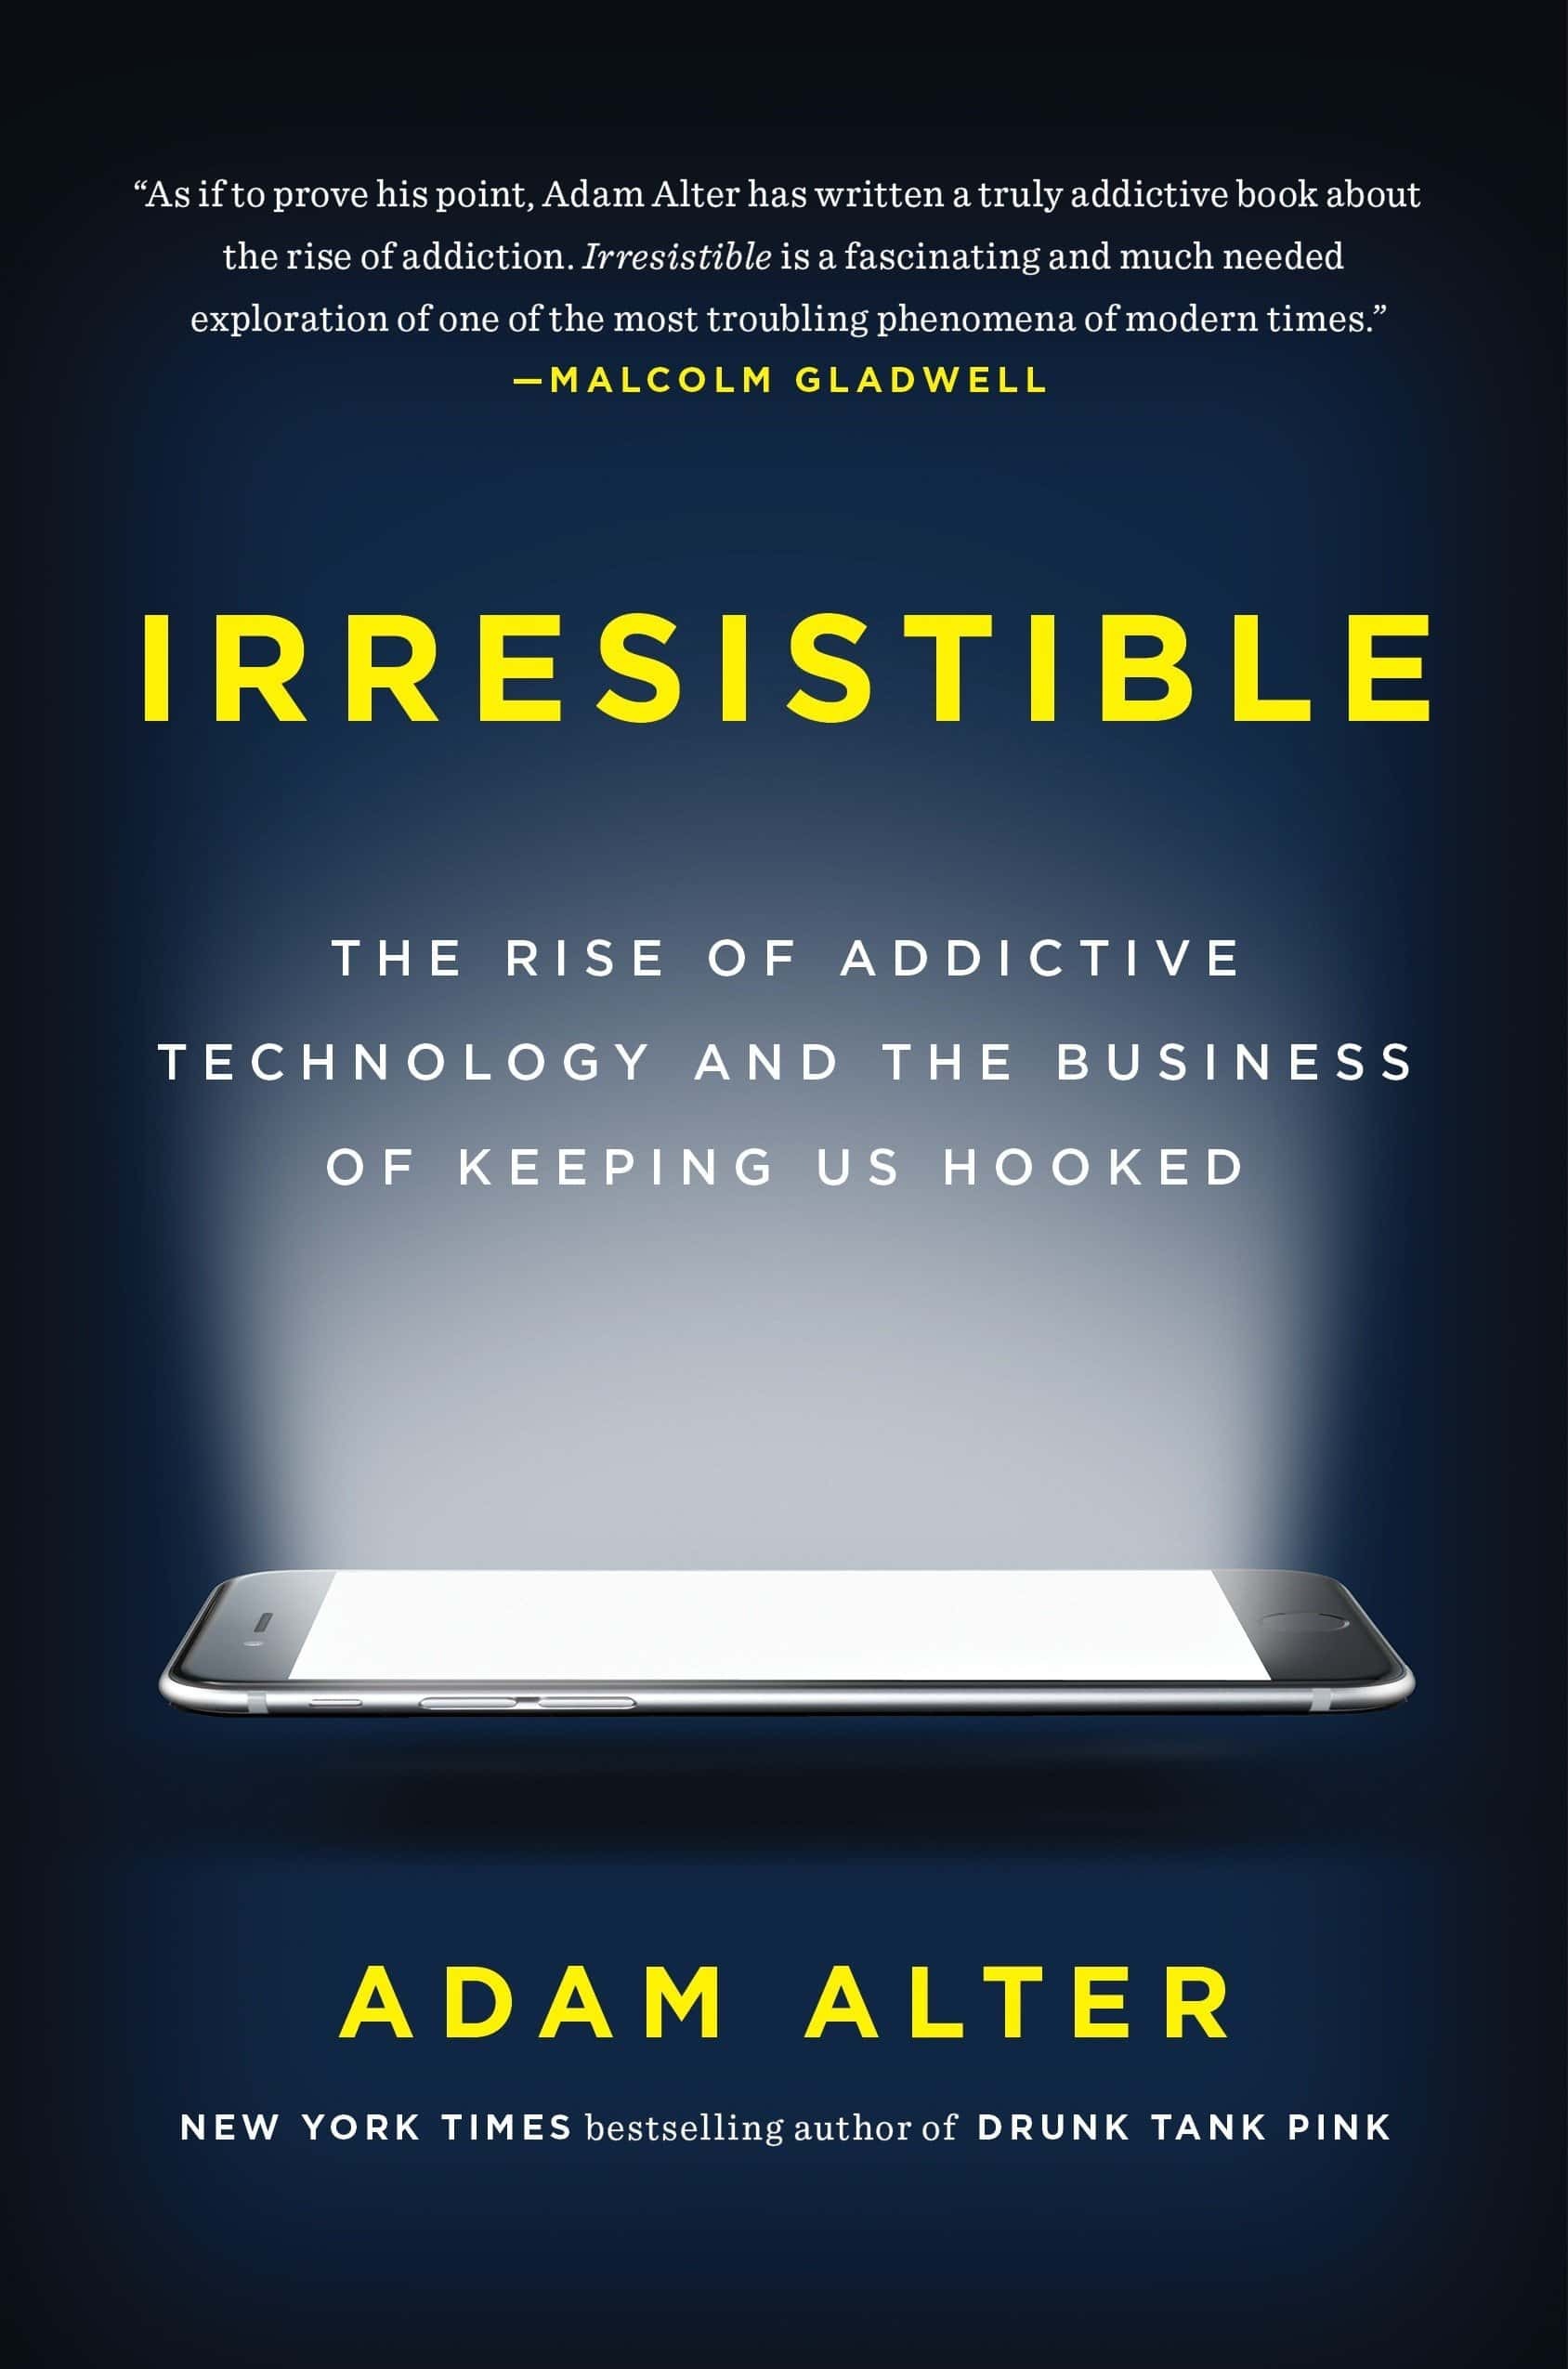 Irresistible: The Rise of Addictive Technology and the Business of Keeping Us Hooked, kirjoittanut Adam Alter - kirjan kansikuva